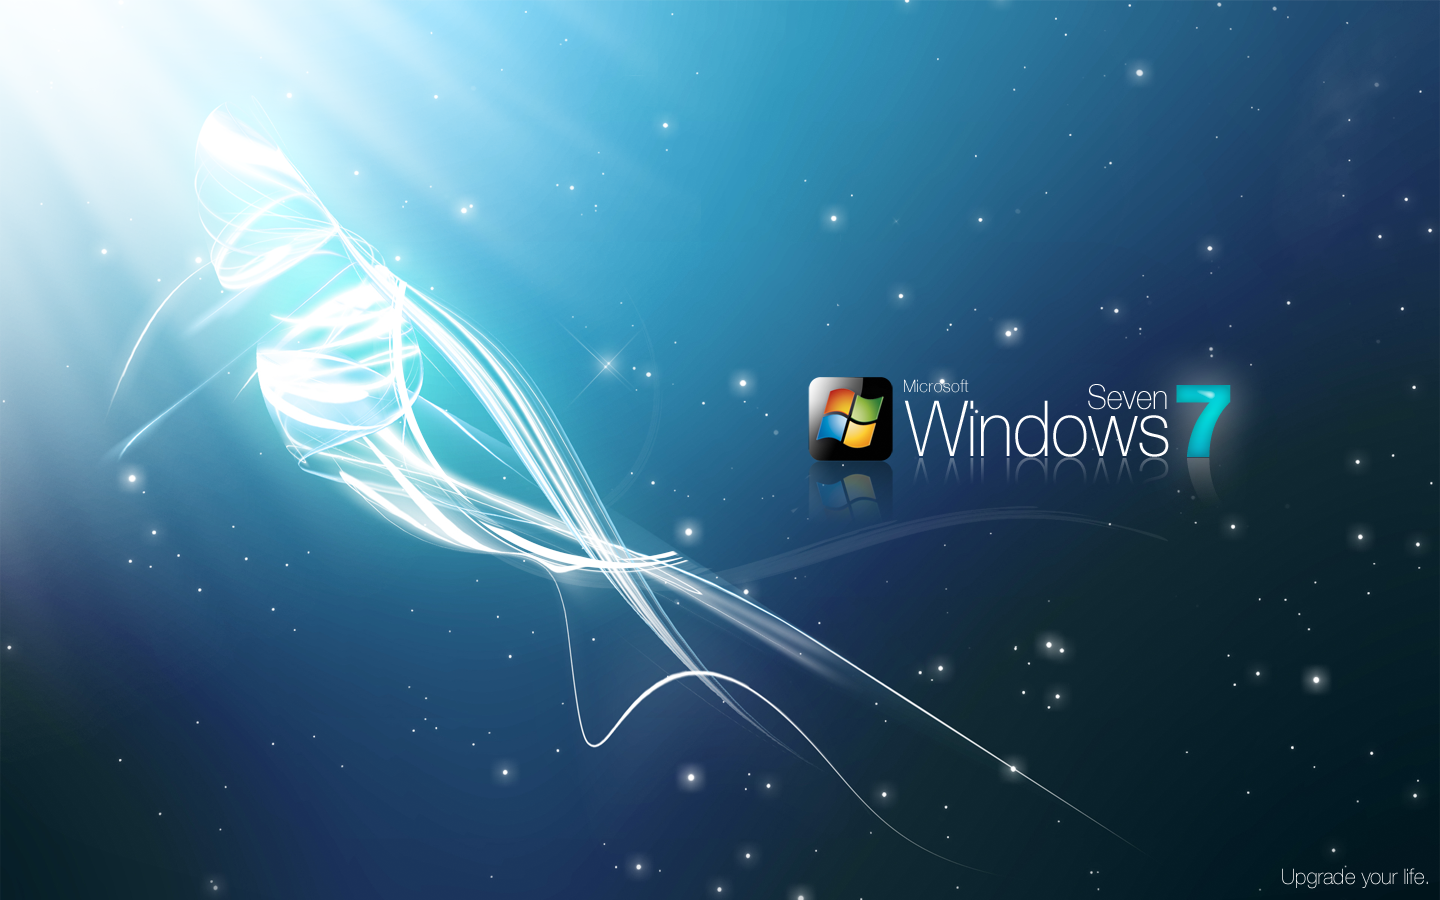 wall paper windows 7 - photo #18